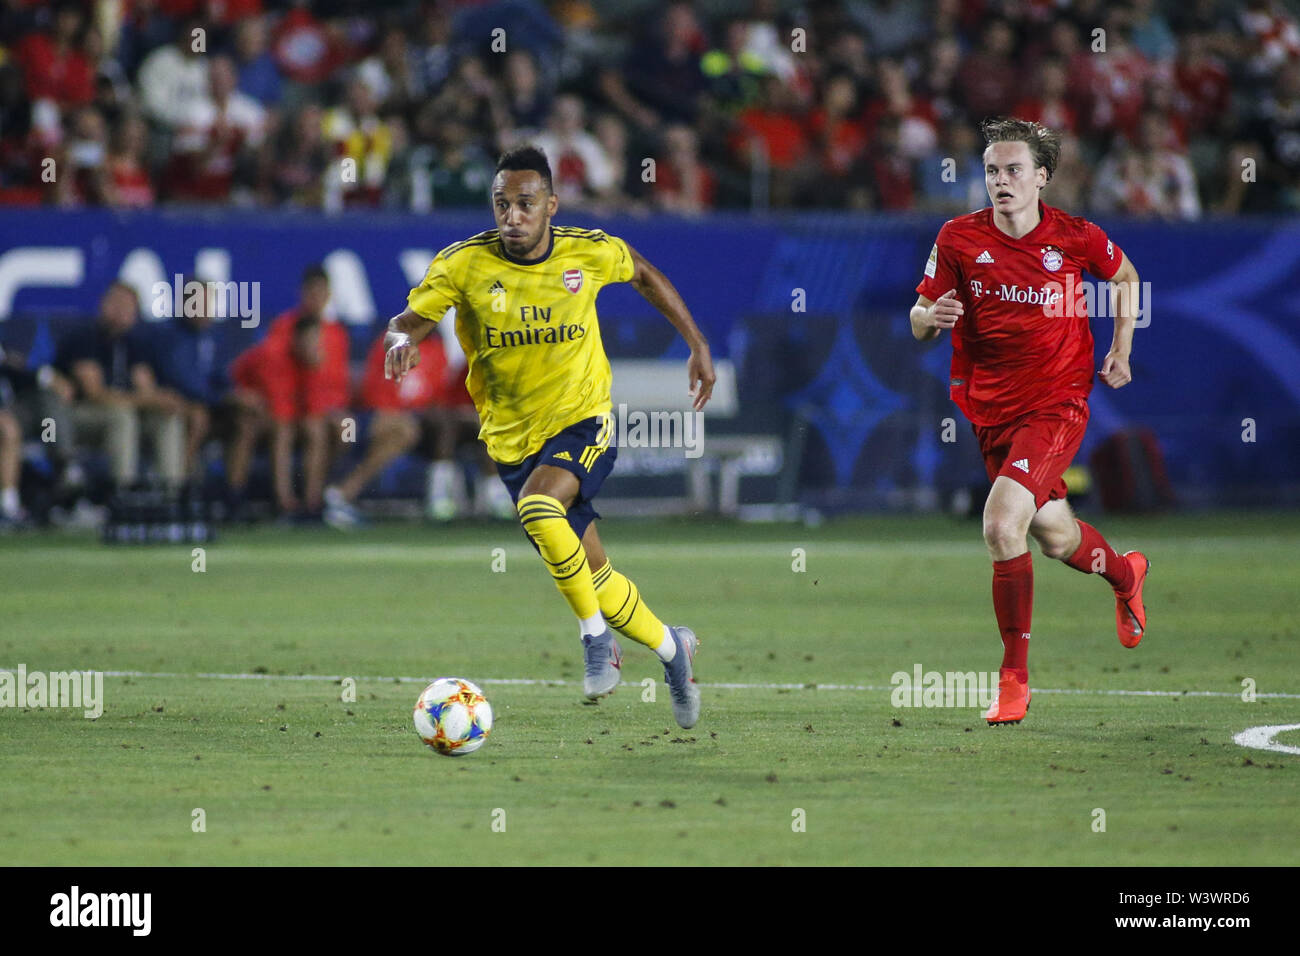 Los Angeles, California, USA. 17th July, 2019. Arsenal forward Pierre-Emerick Aubameyang (14) drives the ball past Bayern Munich forward Ryan Johansson (45) during the 2019 International Champions Cup (ICC) match between Arsenal and Bayern Munich in Carson, California, July 17, 2019. Arsenal won 2-1. Credit: Ringo Chiu/ZUMA Wire/Alamy Live News - Stock Image